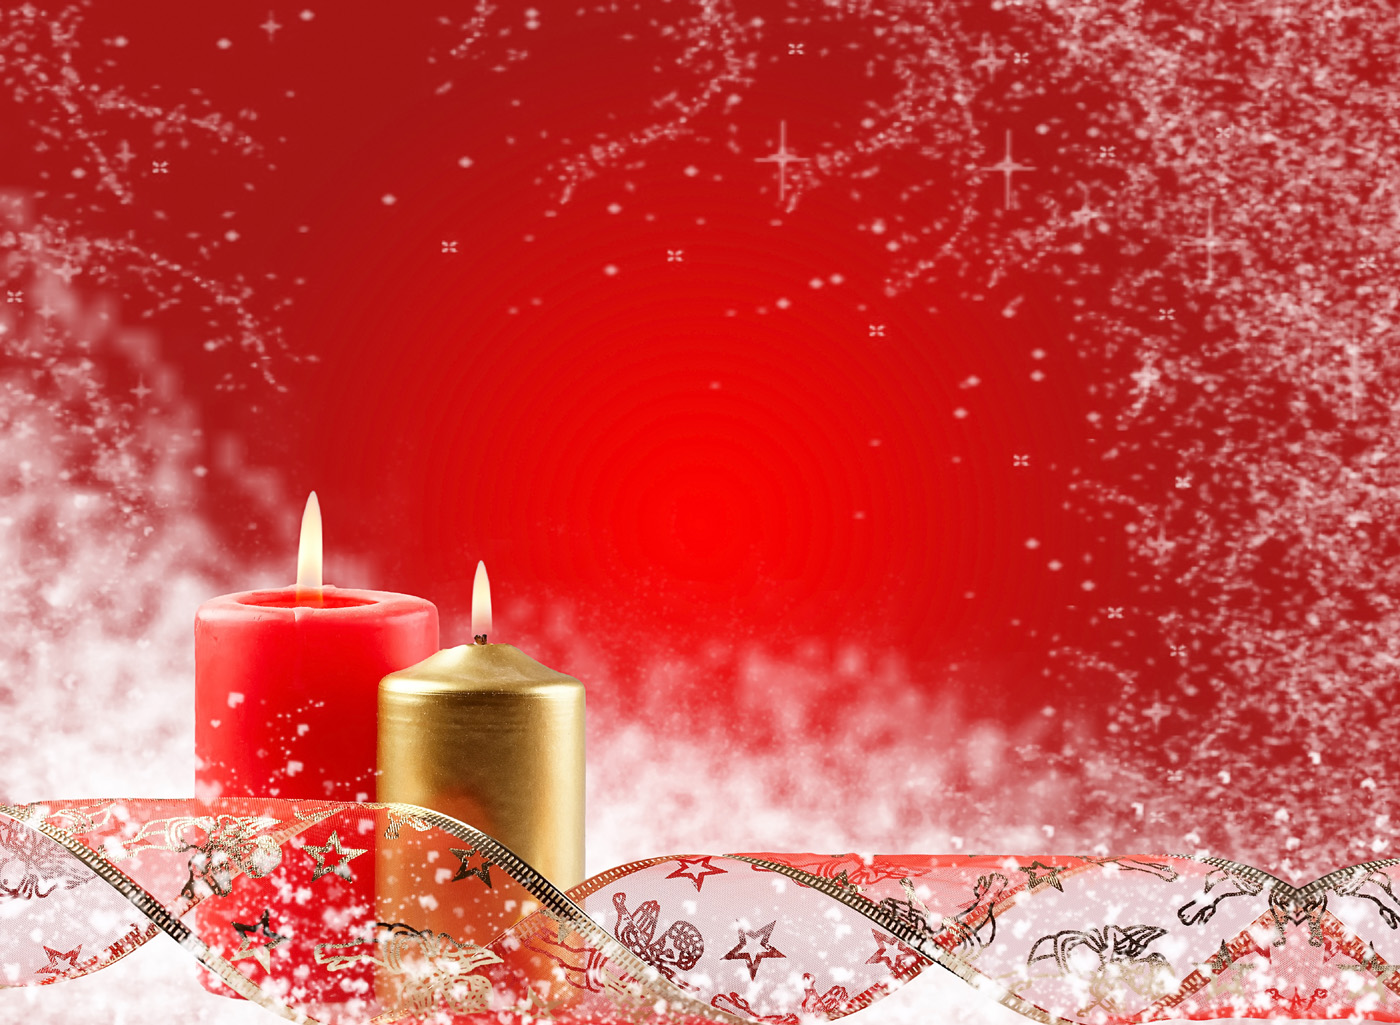 Christmas background 27809 - Christmas - Festival